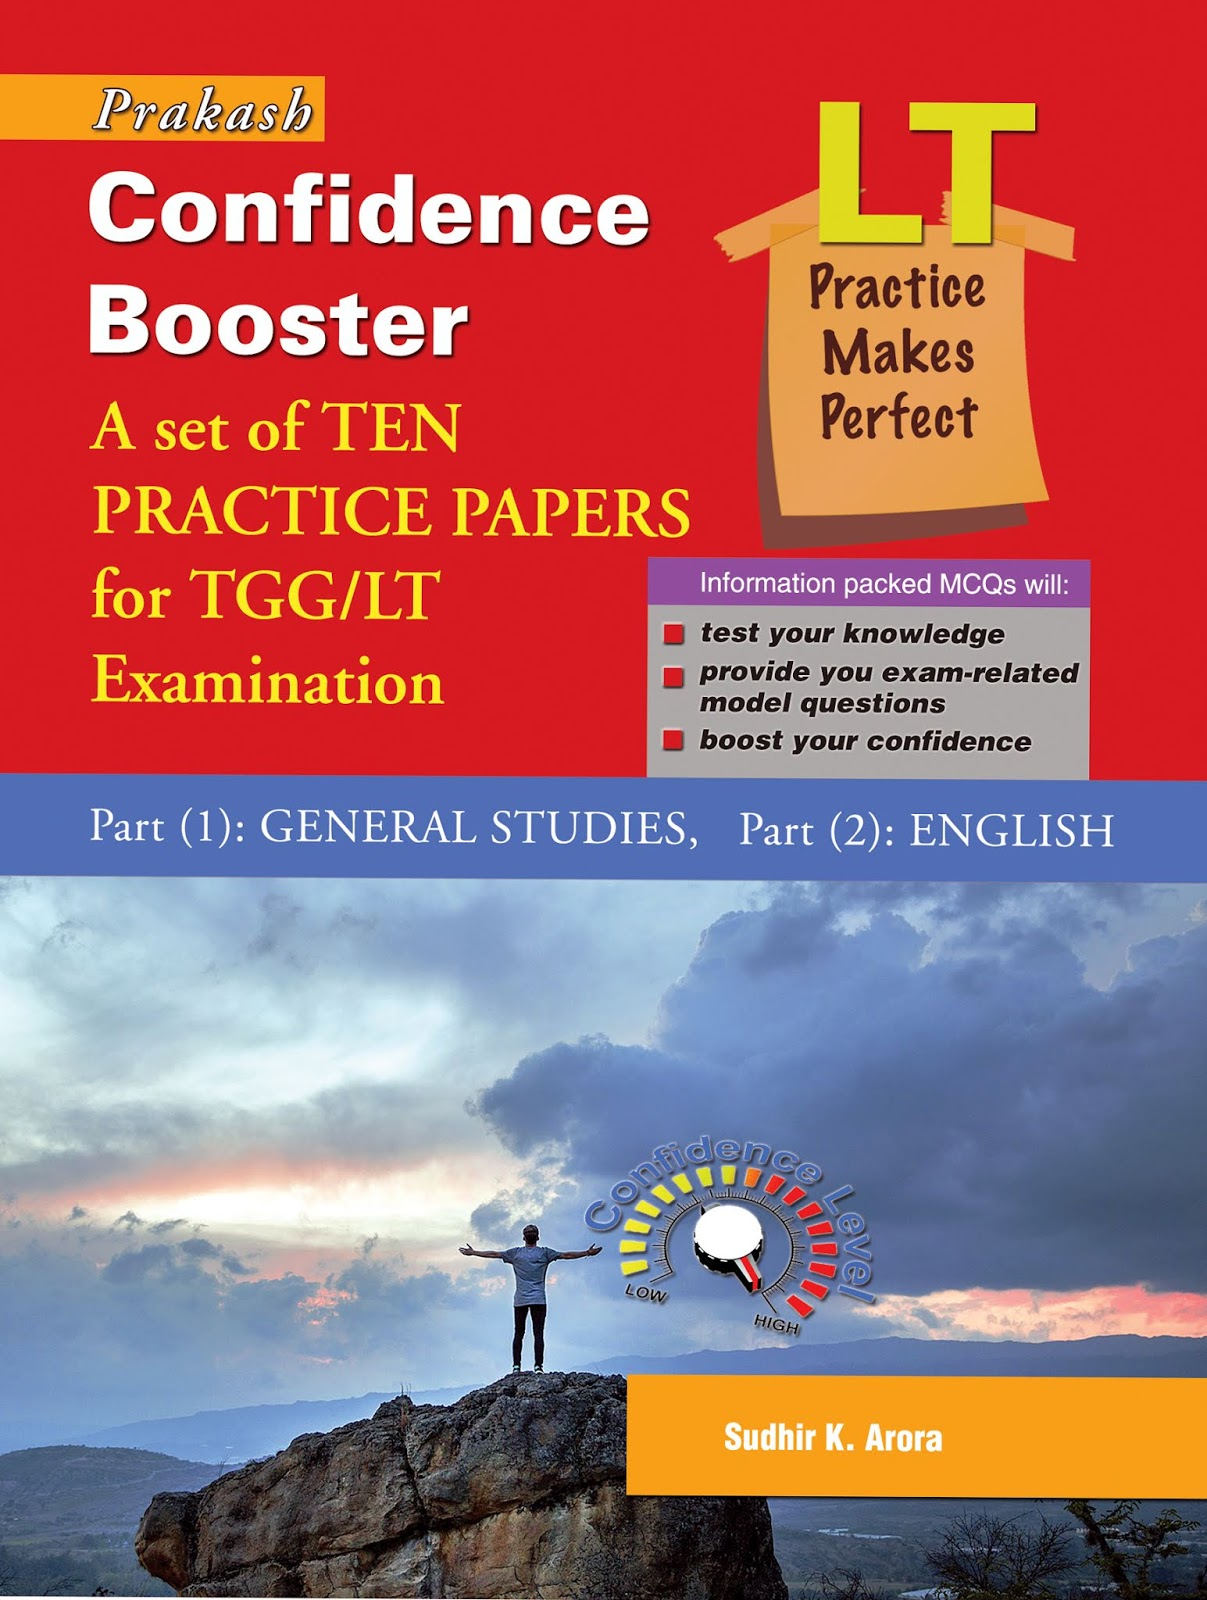 Prakash book depot bareilly views and news confidence booster a set of ten practice papers for tgglt examination fandeluxe Images